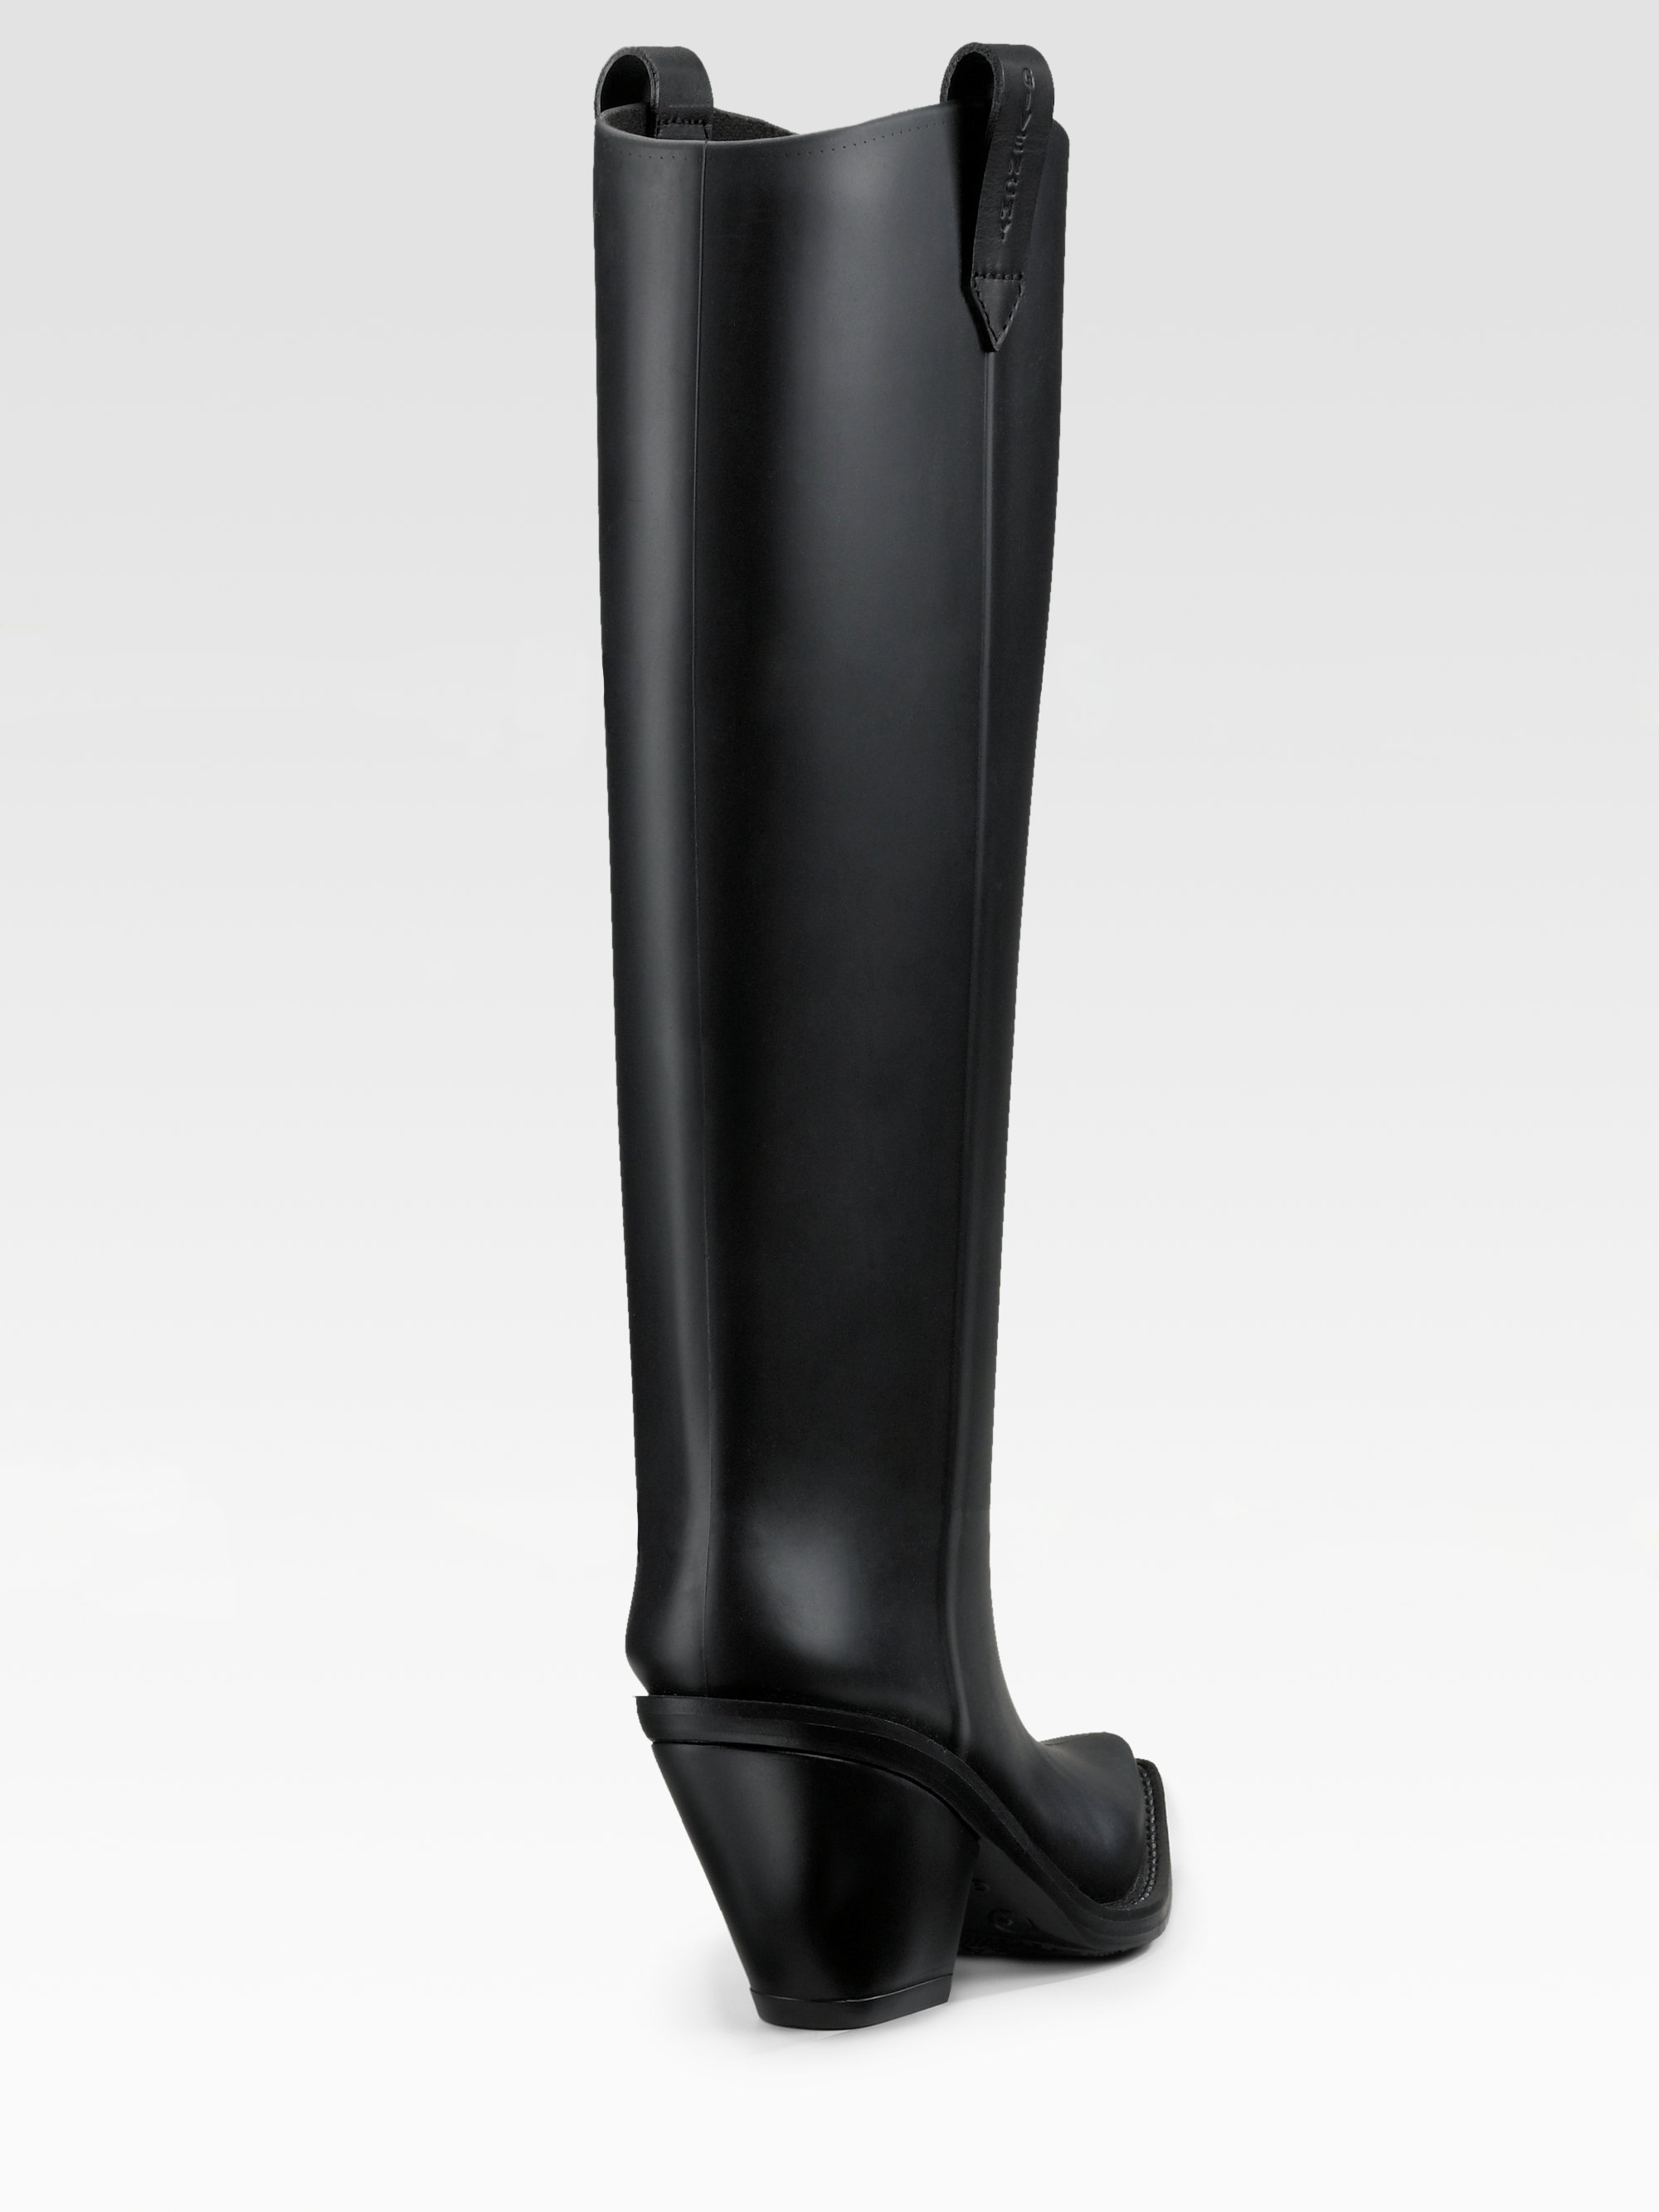 Givenchy Rubber Cowboy Boots in Black | Lyst